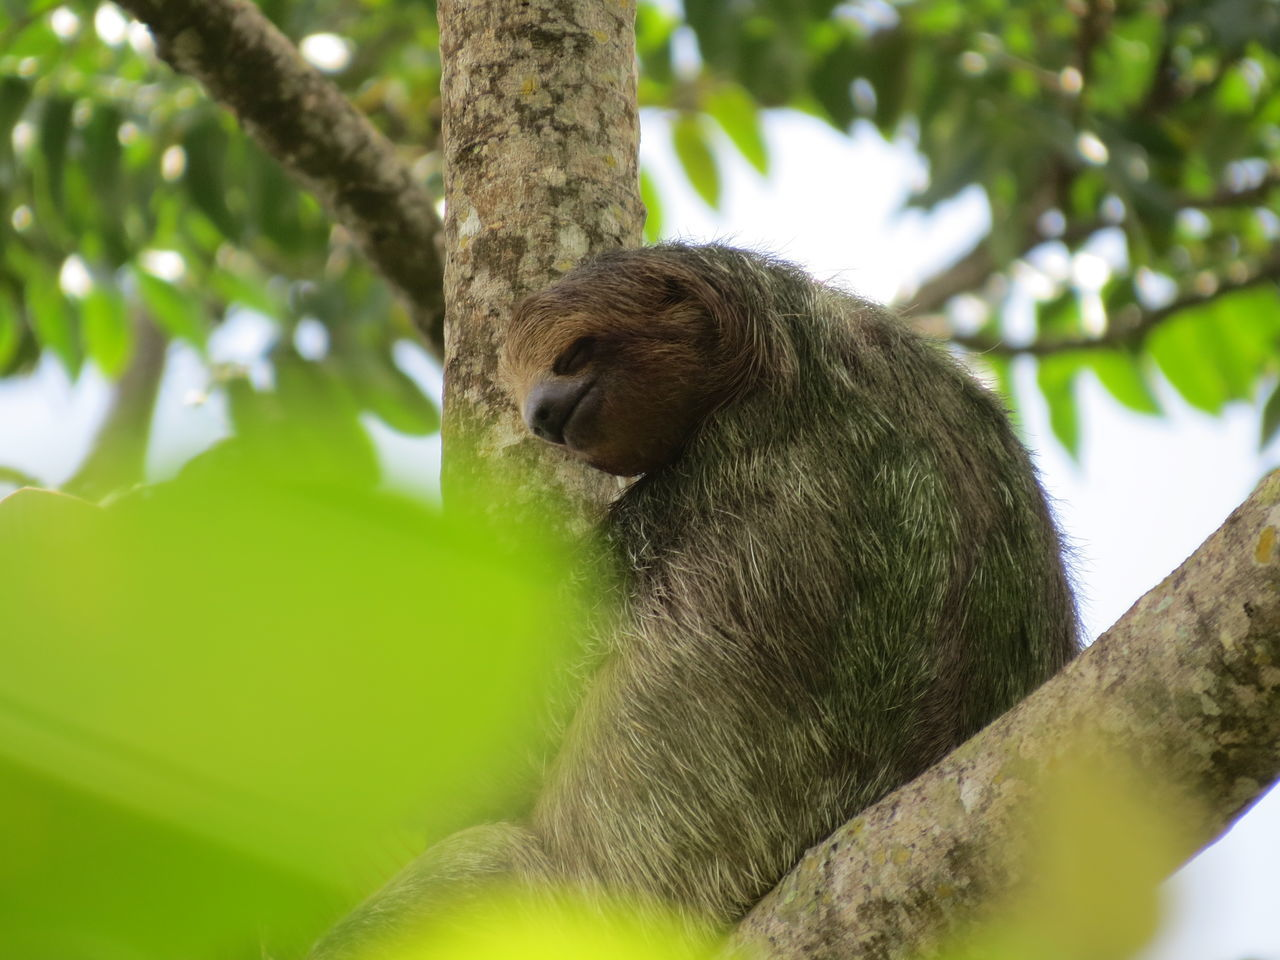 Animal Themes Animals In The Wild Bocos Del Toro Bocos Del Toro, Panama Nature At Its Best Nature Up Close One Animal Panamá Pigmy Sloth Sloth Sloth Island Travel The World Wildlife